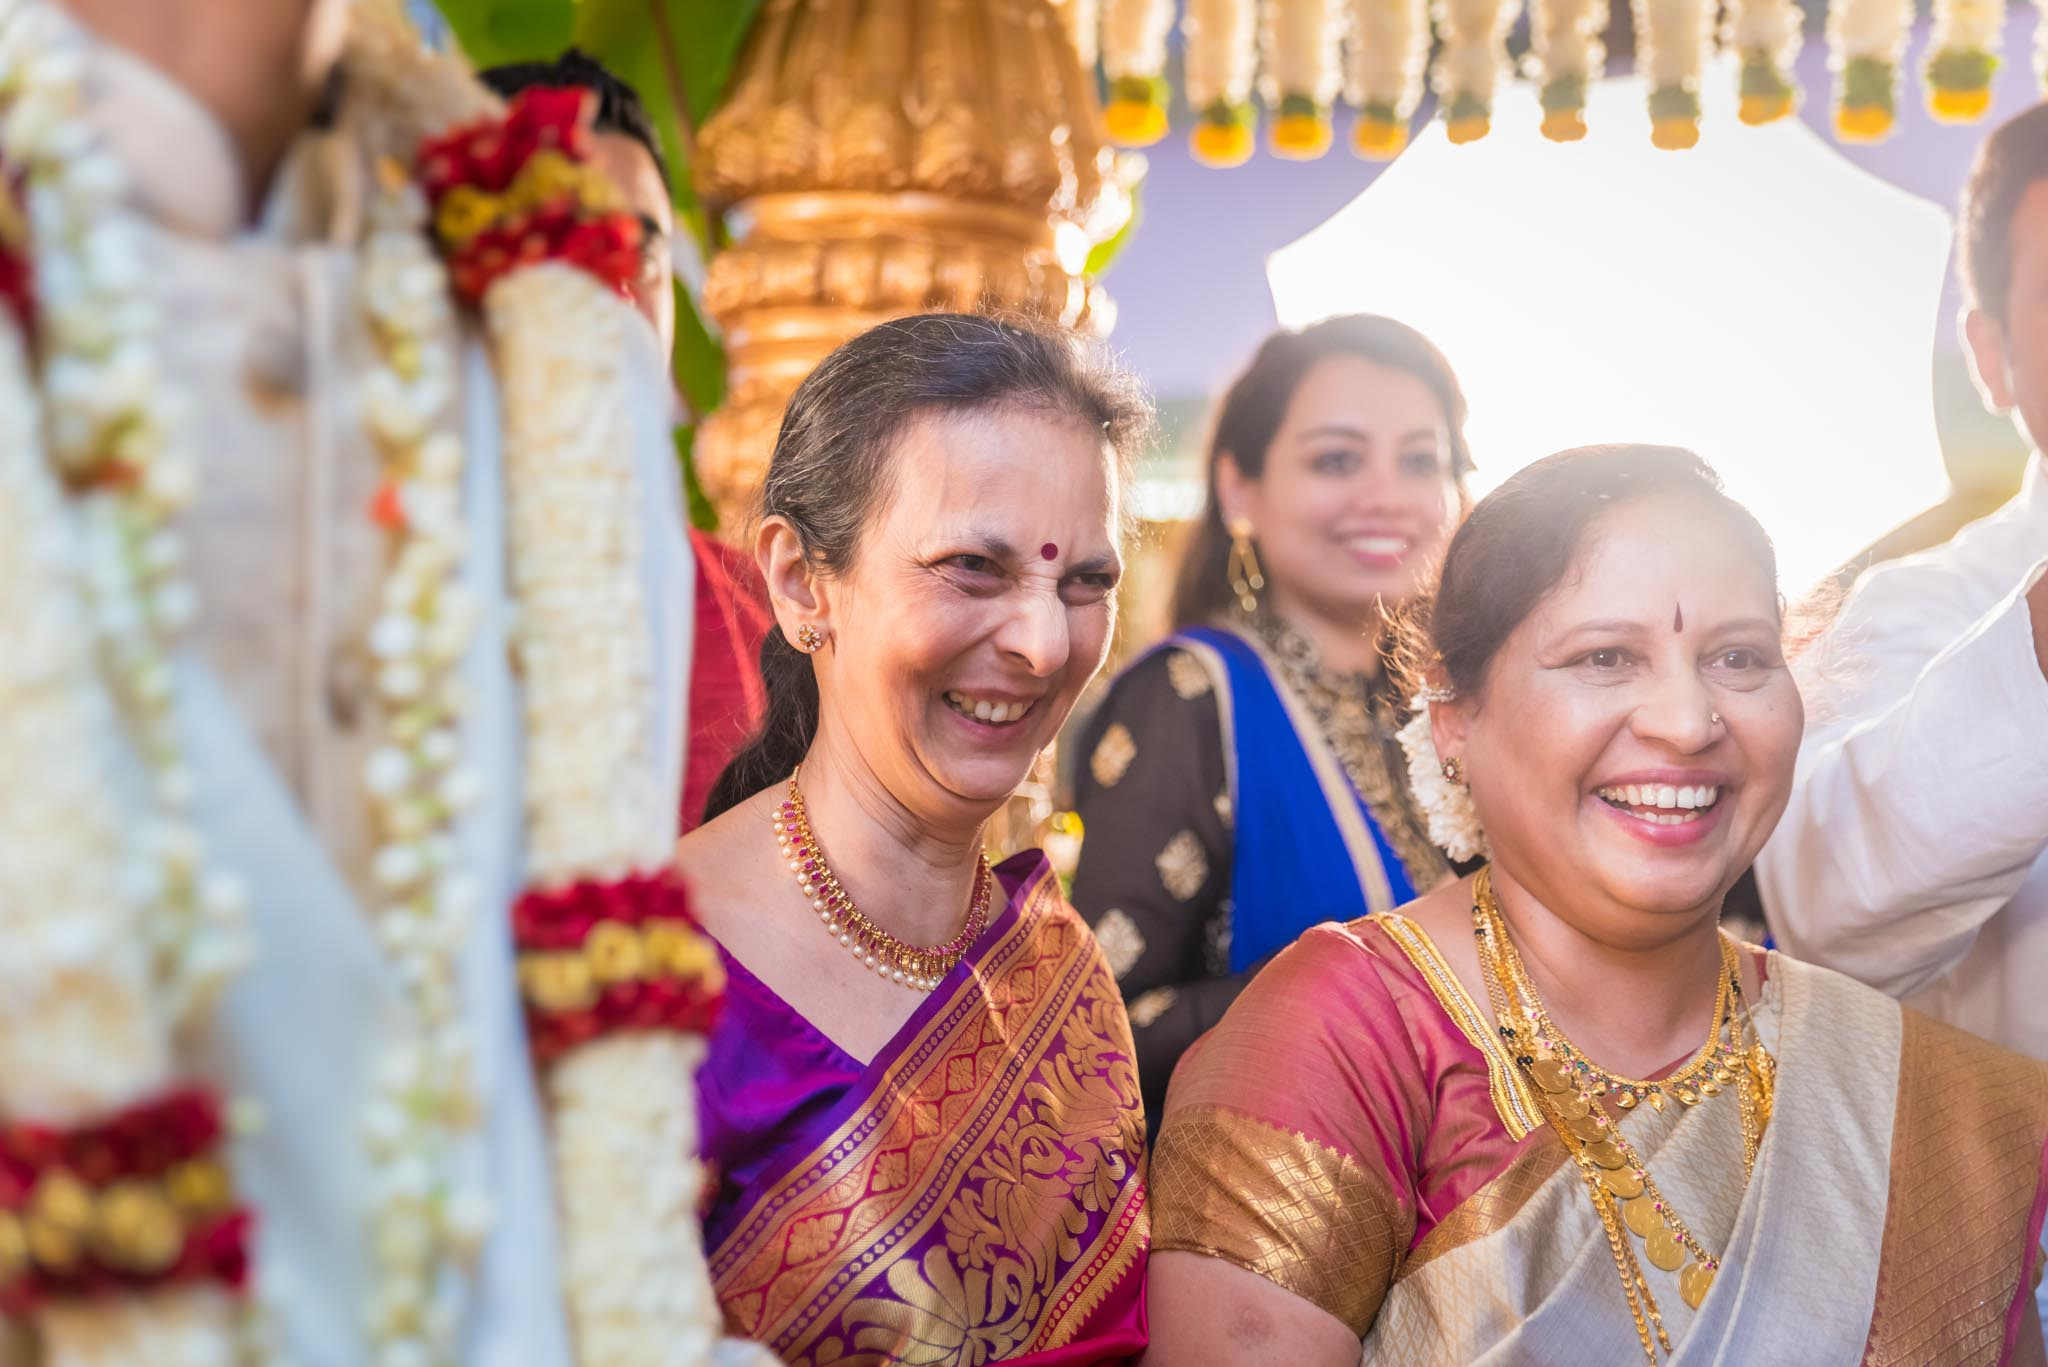 WhatKnot-Candid-Wedding-Photography-Mumbai-Bangalore-166